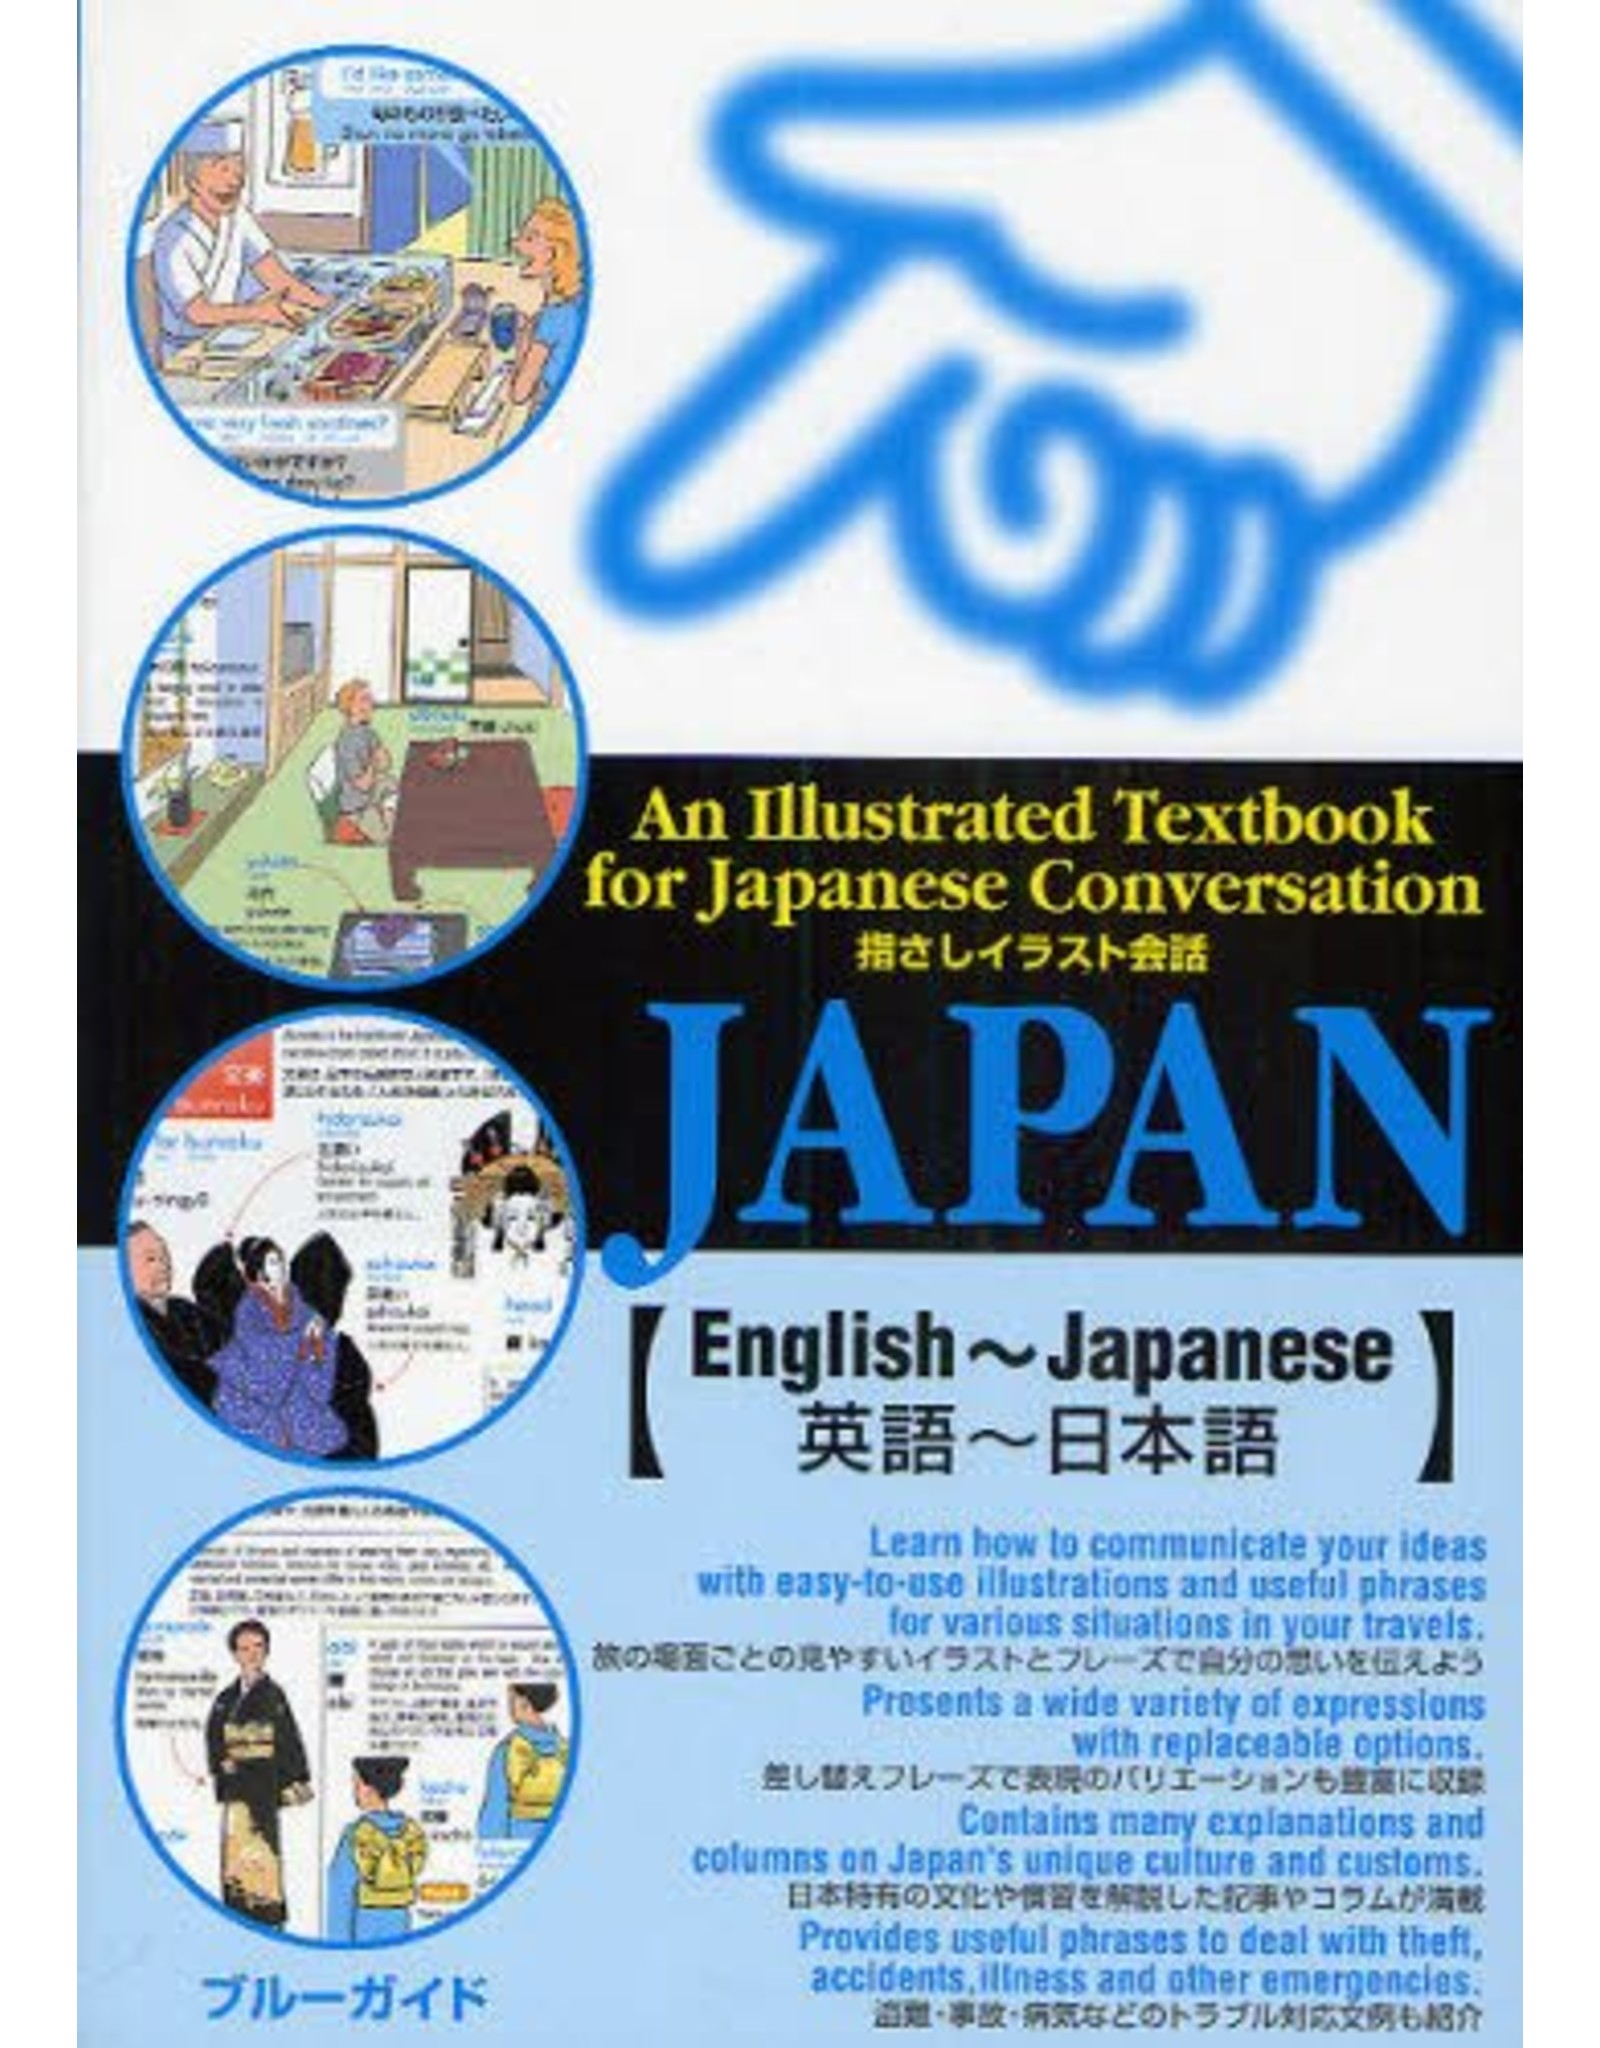 AN ILLUSTRATED TEXTBOOK FOR JAPANESE CONVERSATION: ENGLISH - JAPANESE